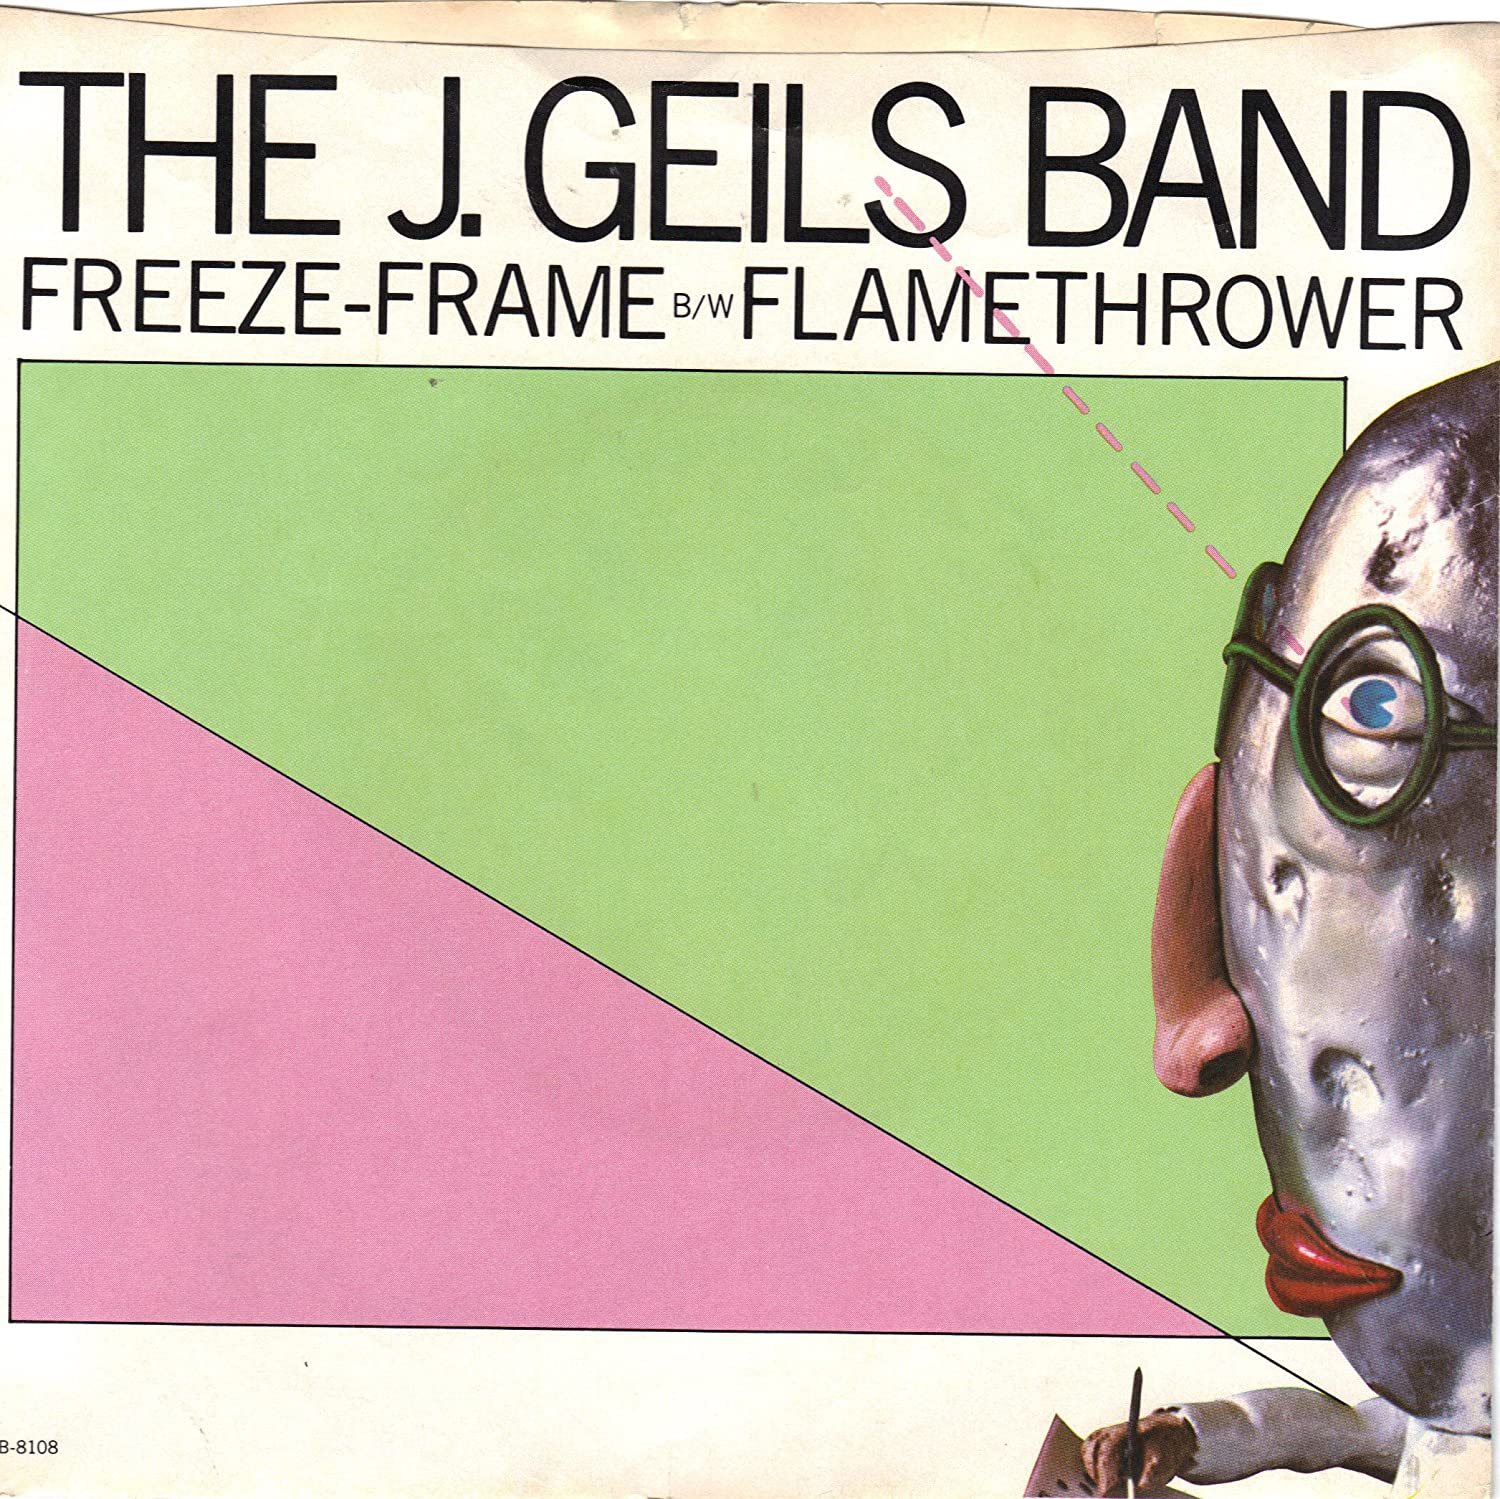 J. Geils Band - GEILS, J., Band/Freeze-Frame/45rpm record + picture ...